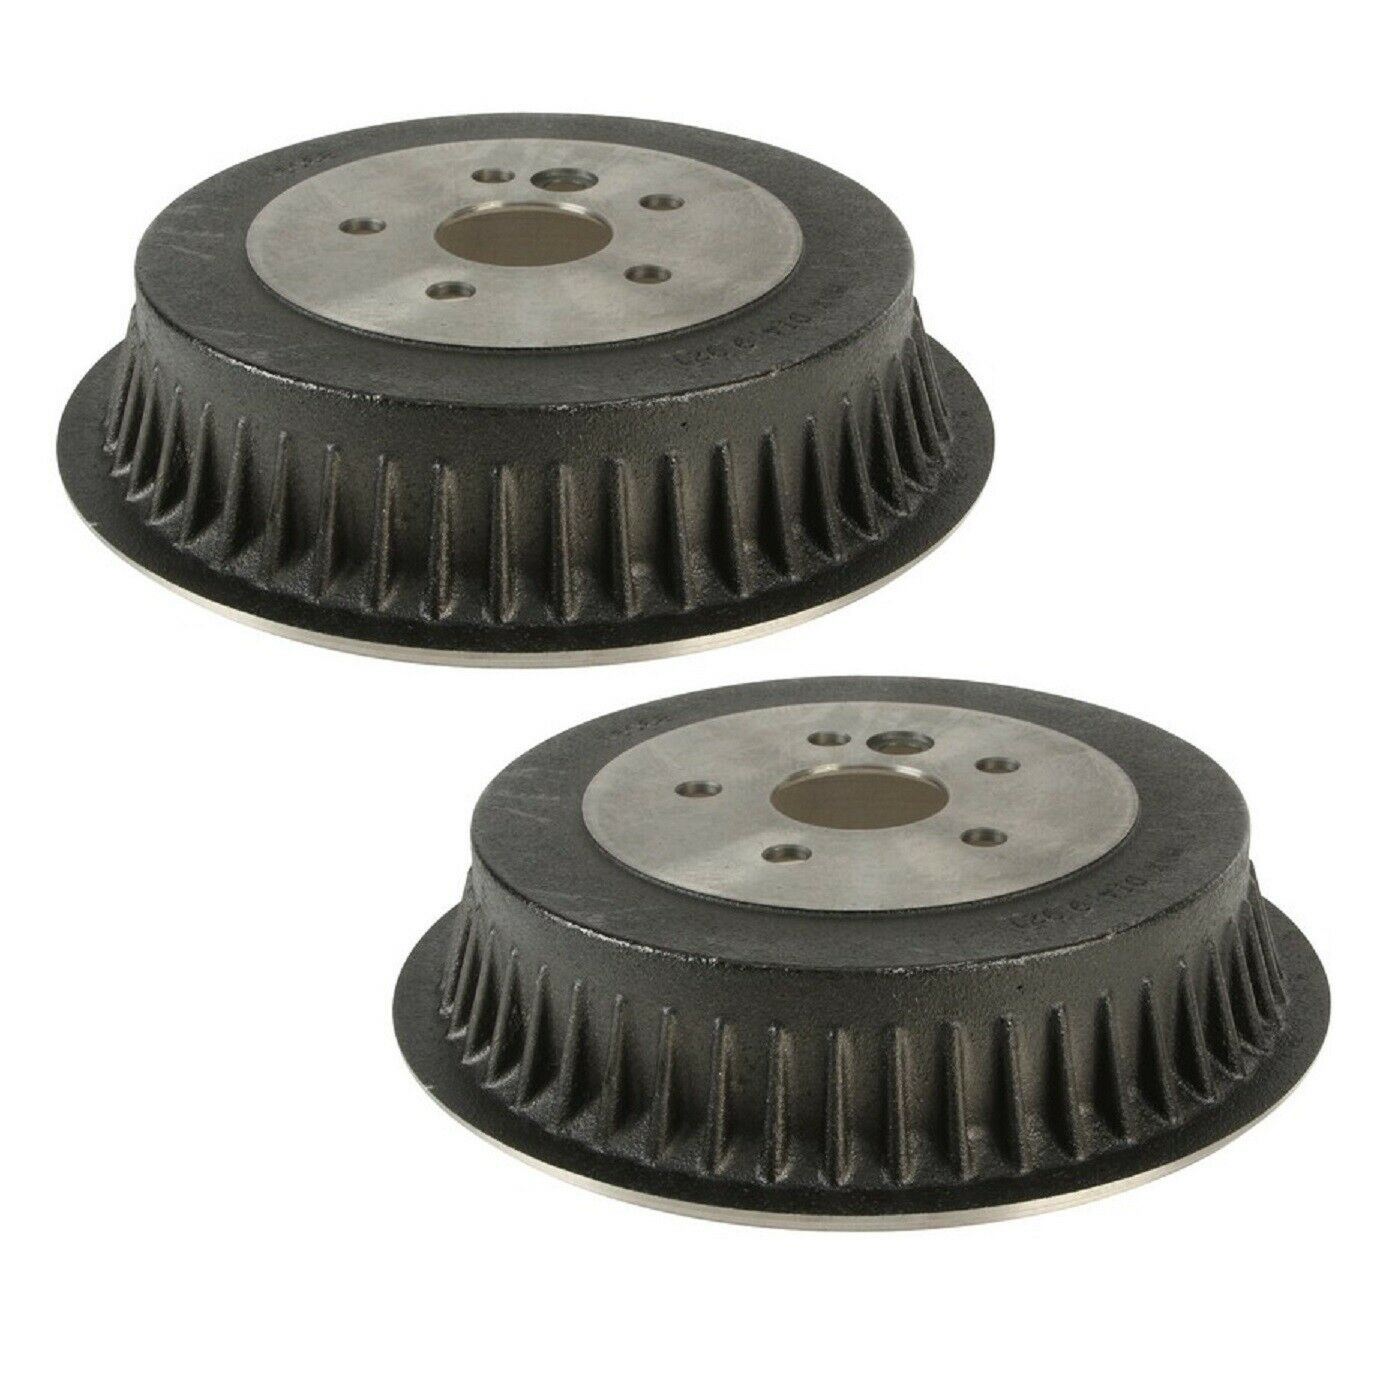 Pair (2) Rear Brake Drums for 1998-2003 Toyota Sienna